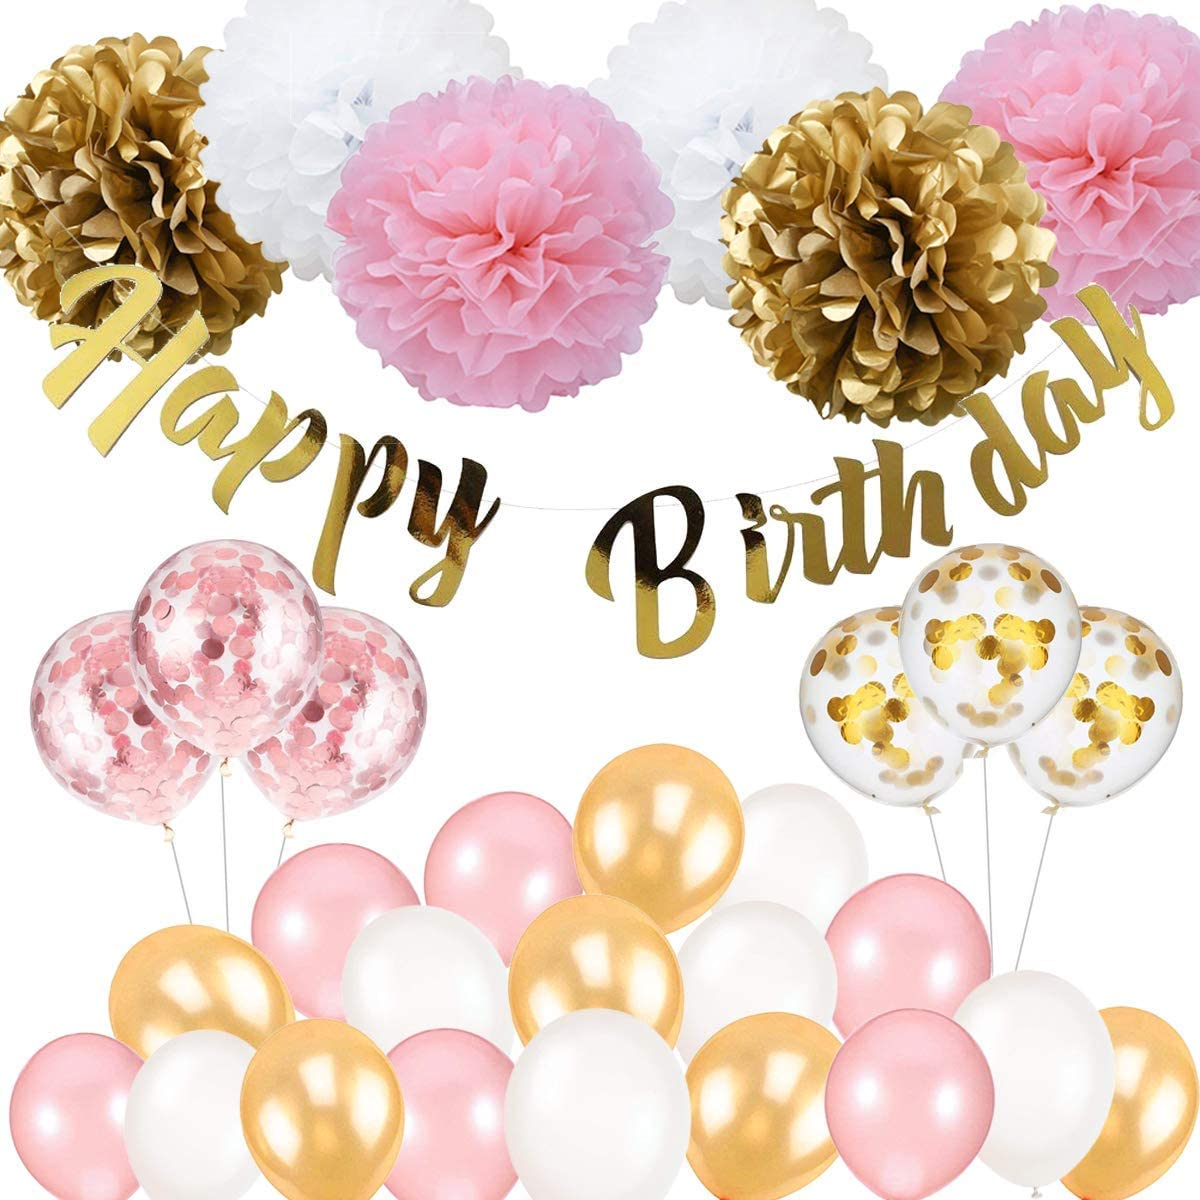 Birthday Decoration, Happy Birthday Banner, Tissue Flower, Confetti Balloons for 16th 18th 21st 30th 50th 60th Birthday Party Decoration for Women Girls